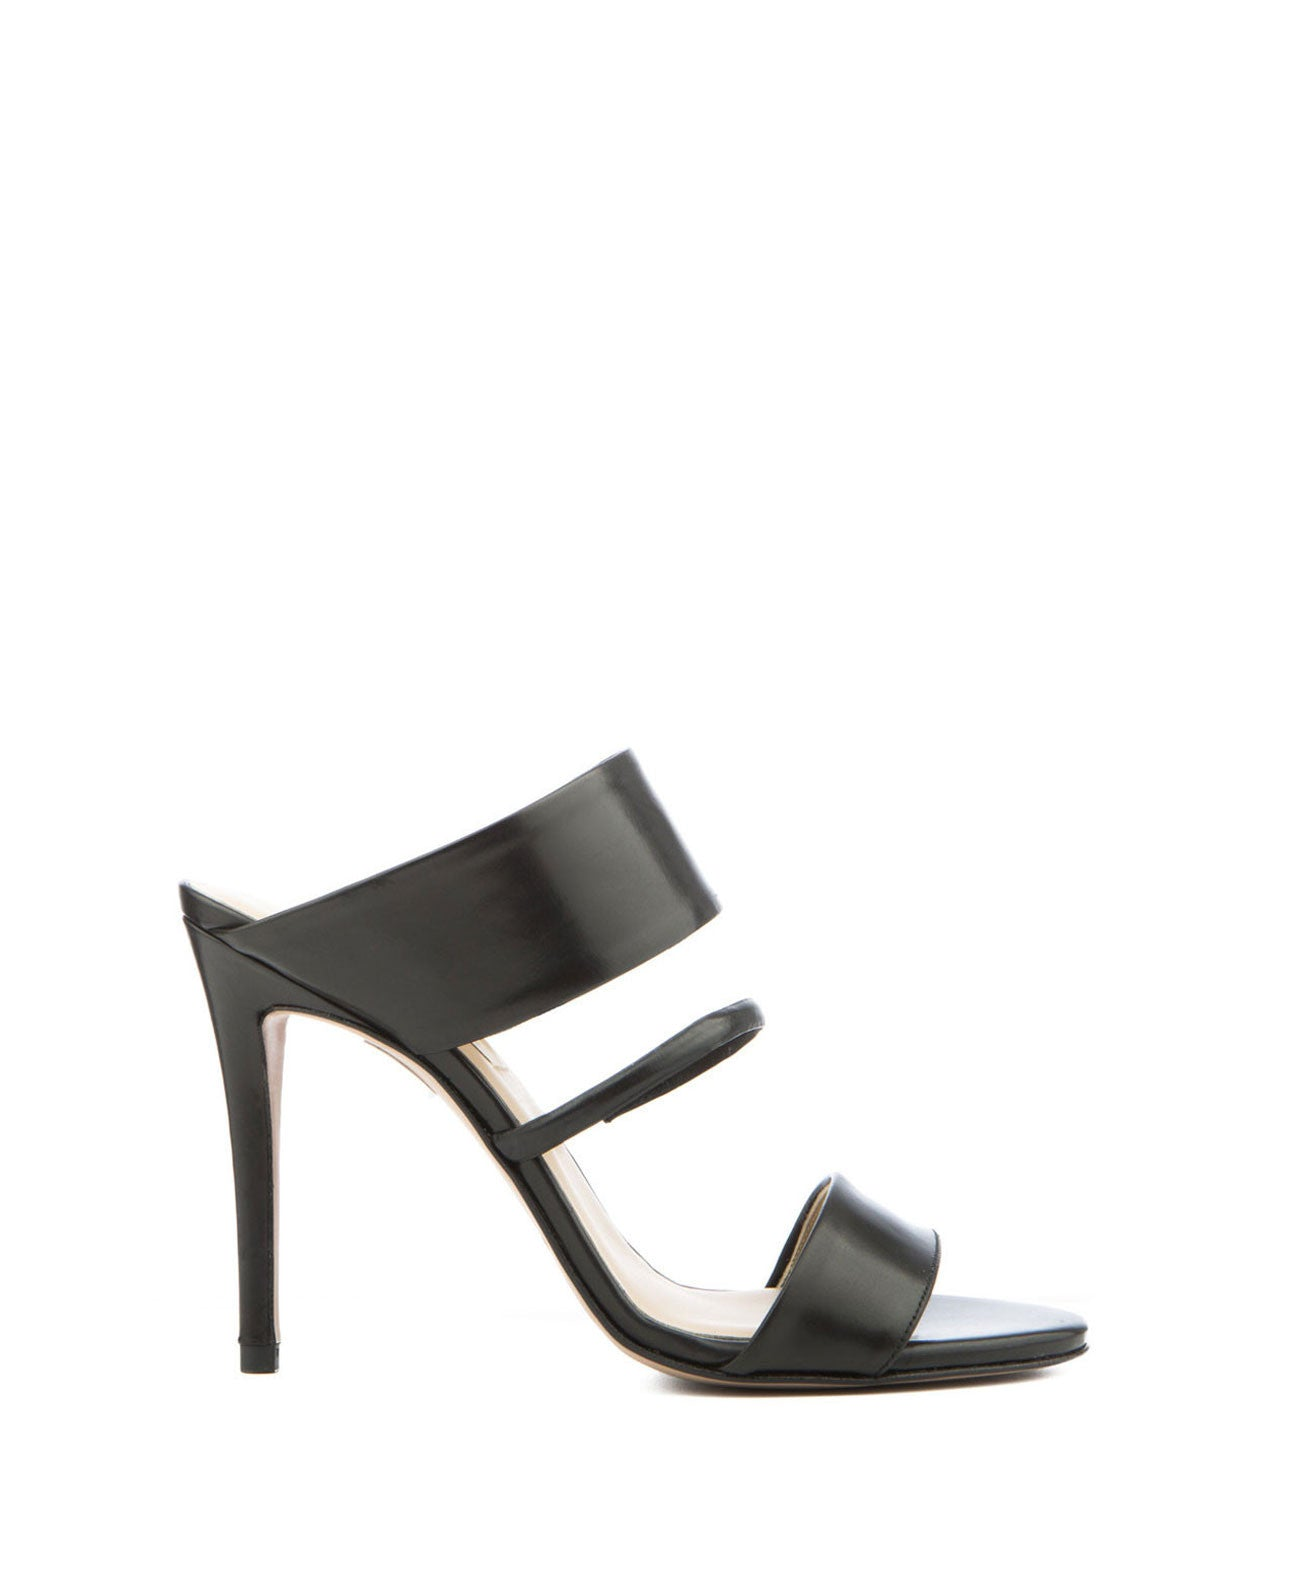 Black Resin Leather Evening Mule Sandal - Koko & Palenki - 1